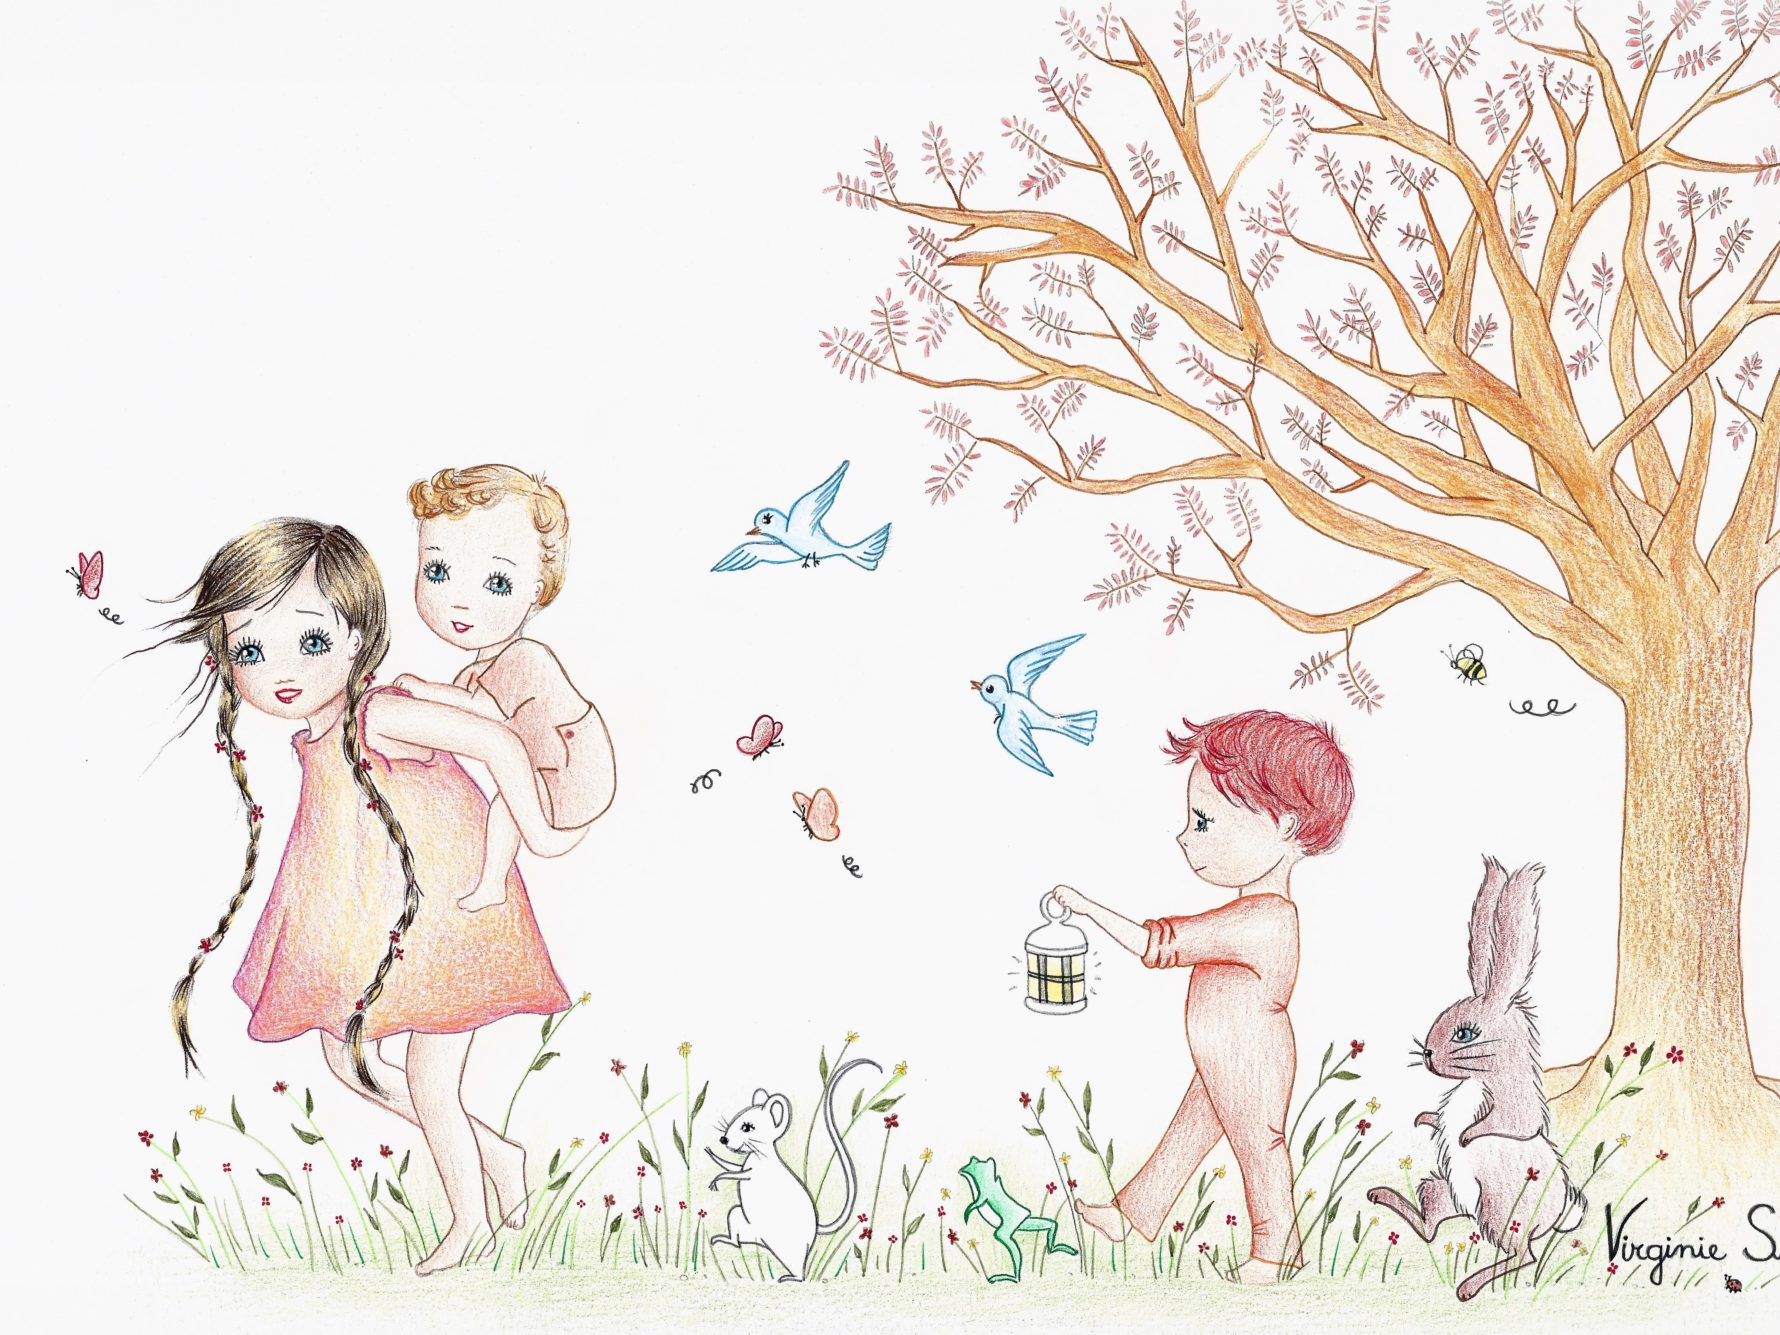 Virginie Suys Children in the forest in orange & blue illustration